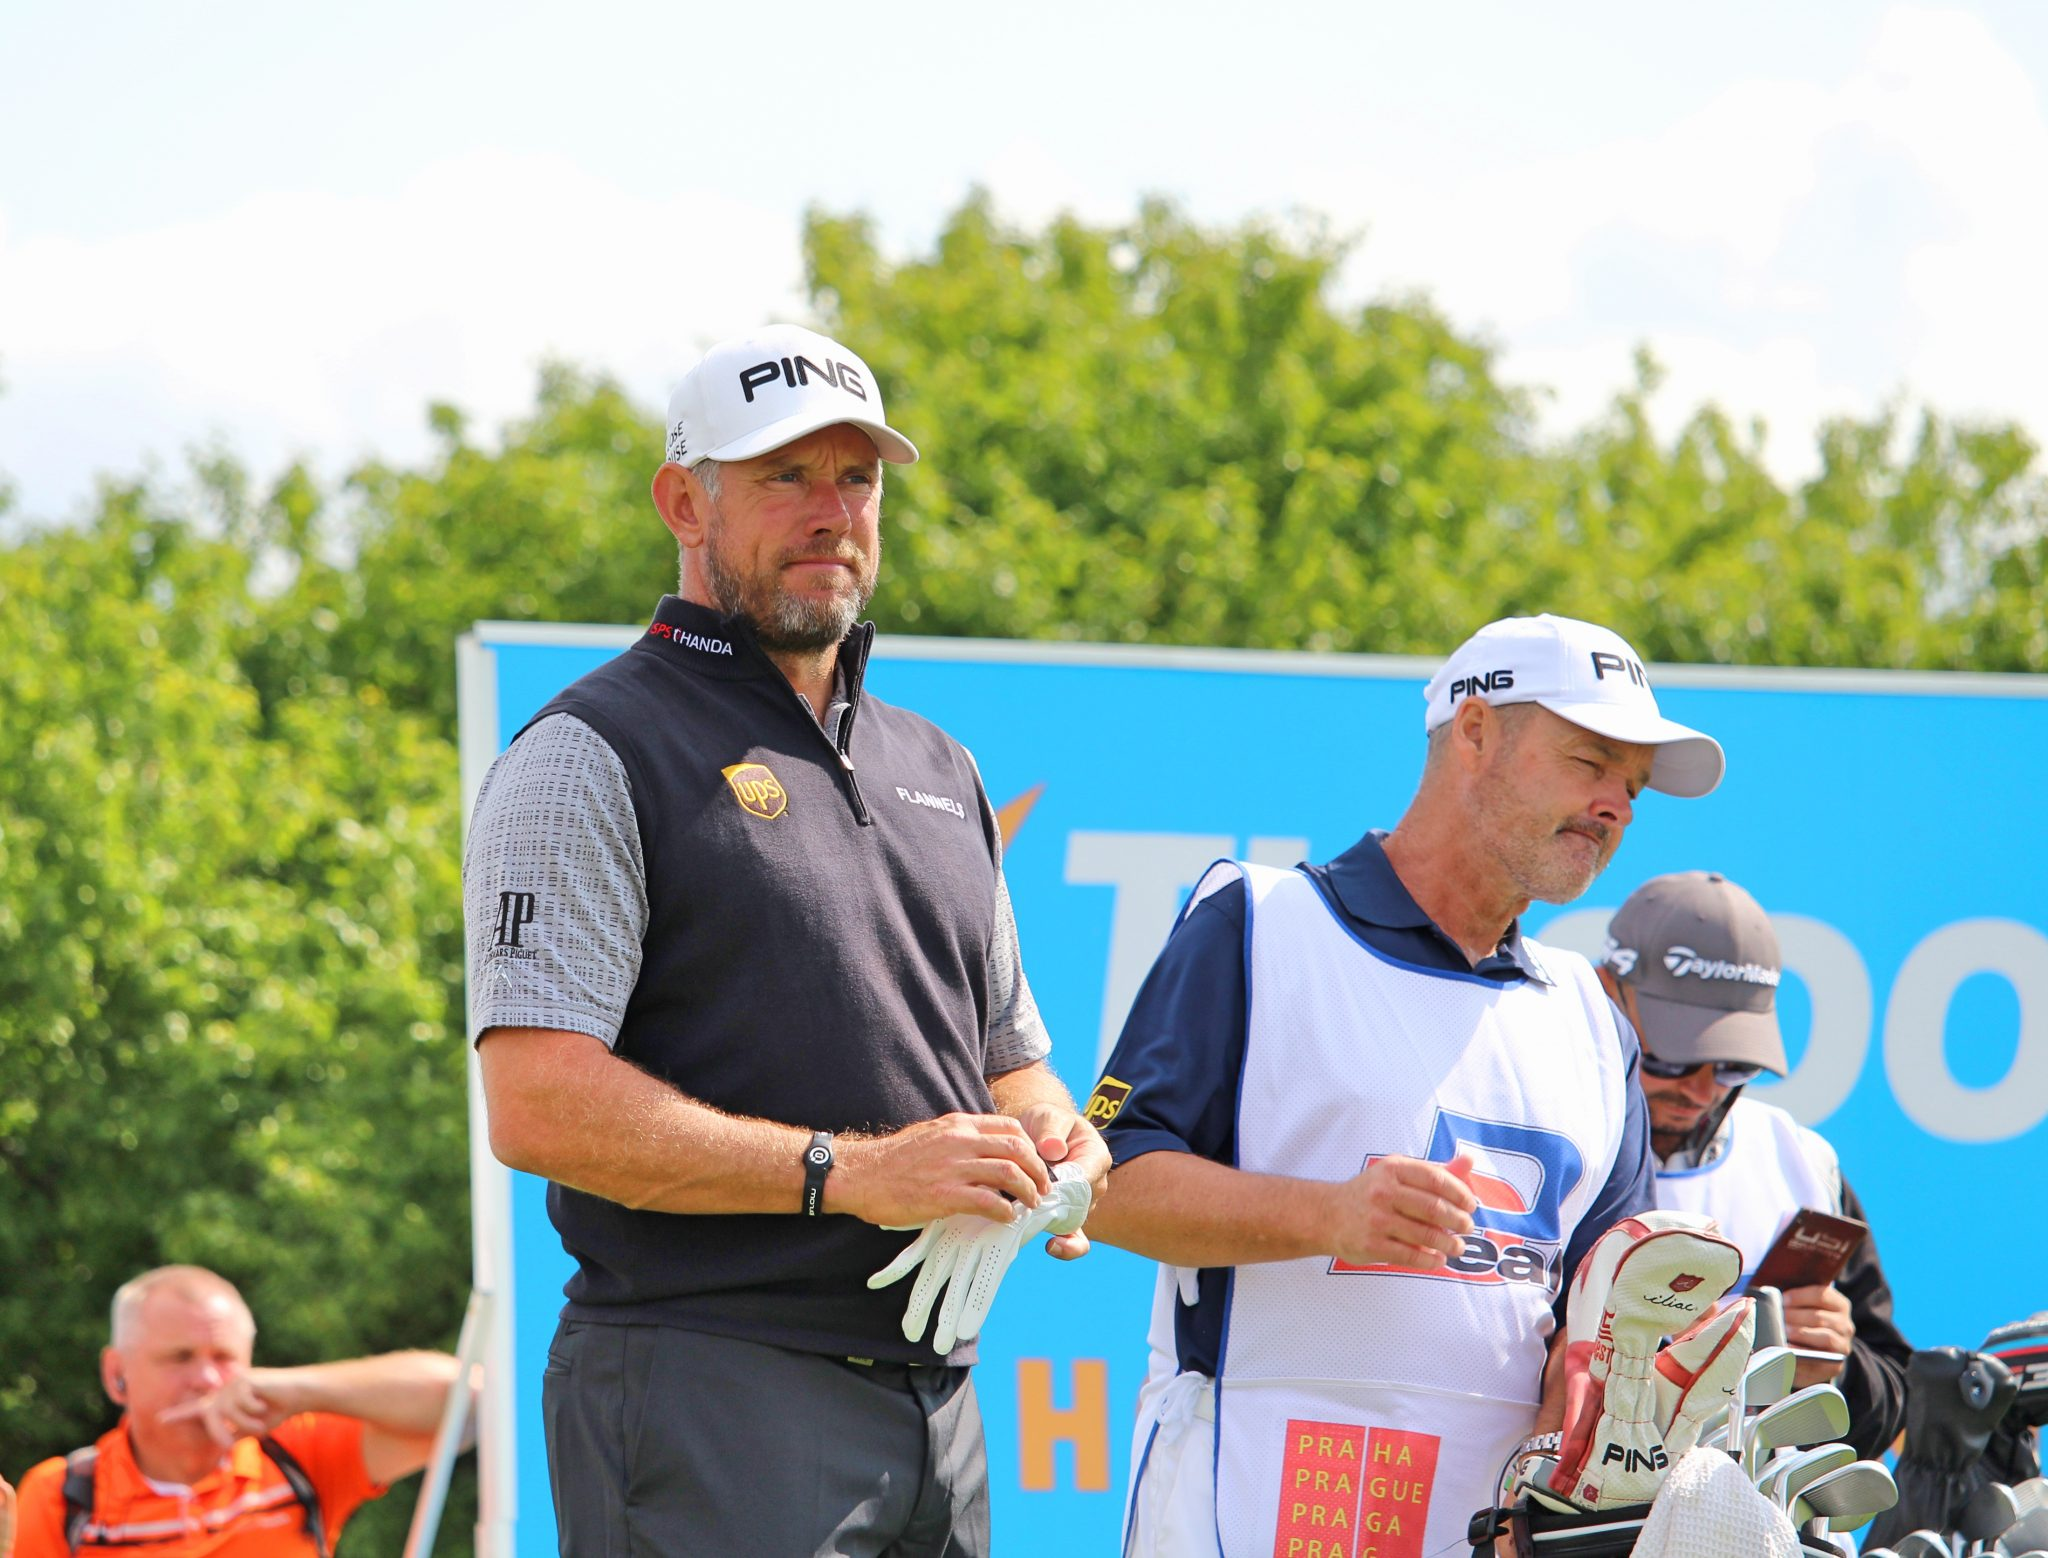 Lee Westwood on the 13th hole